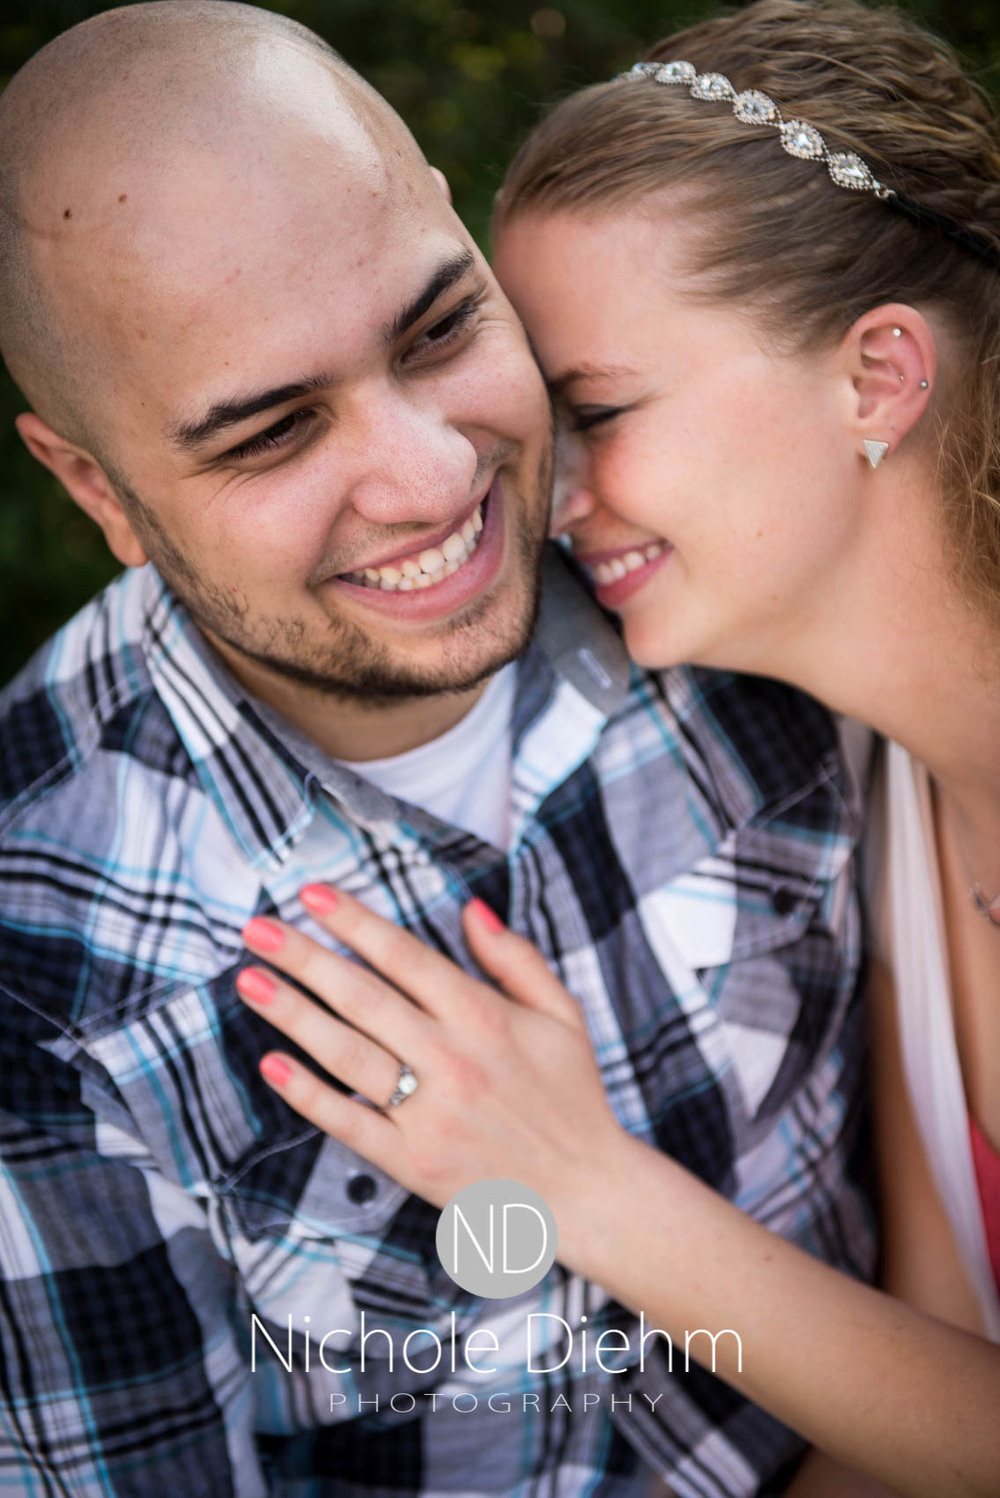 Engagement-photographer-UNI-Cedar-Falls-Iowa-103.jpg